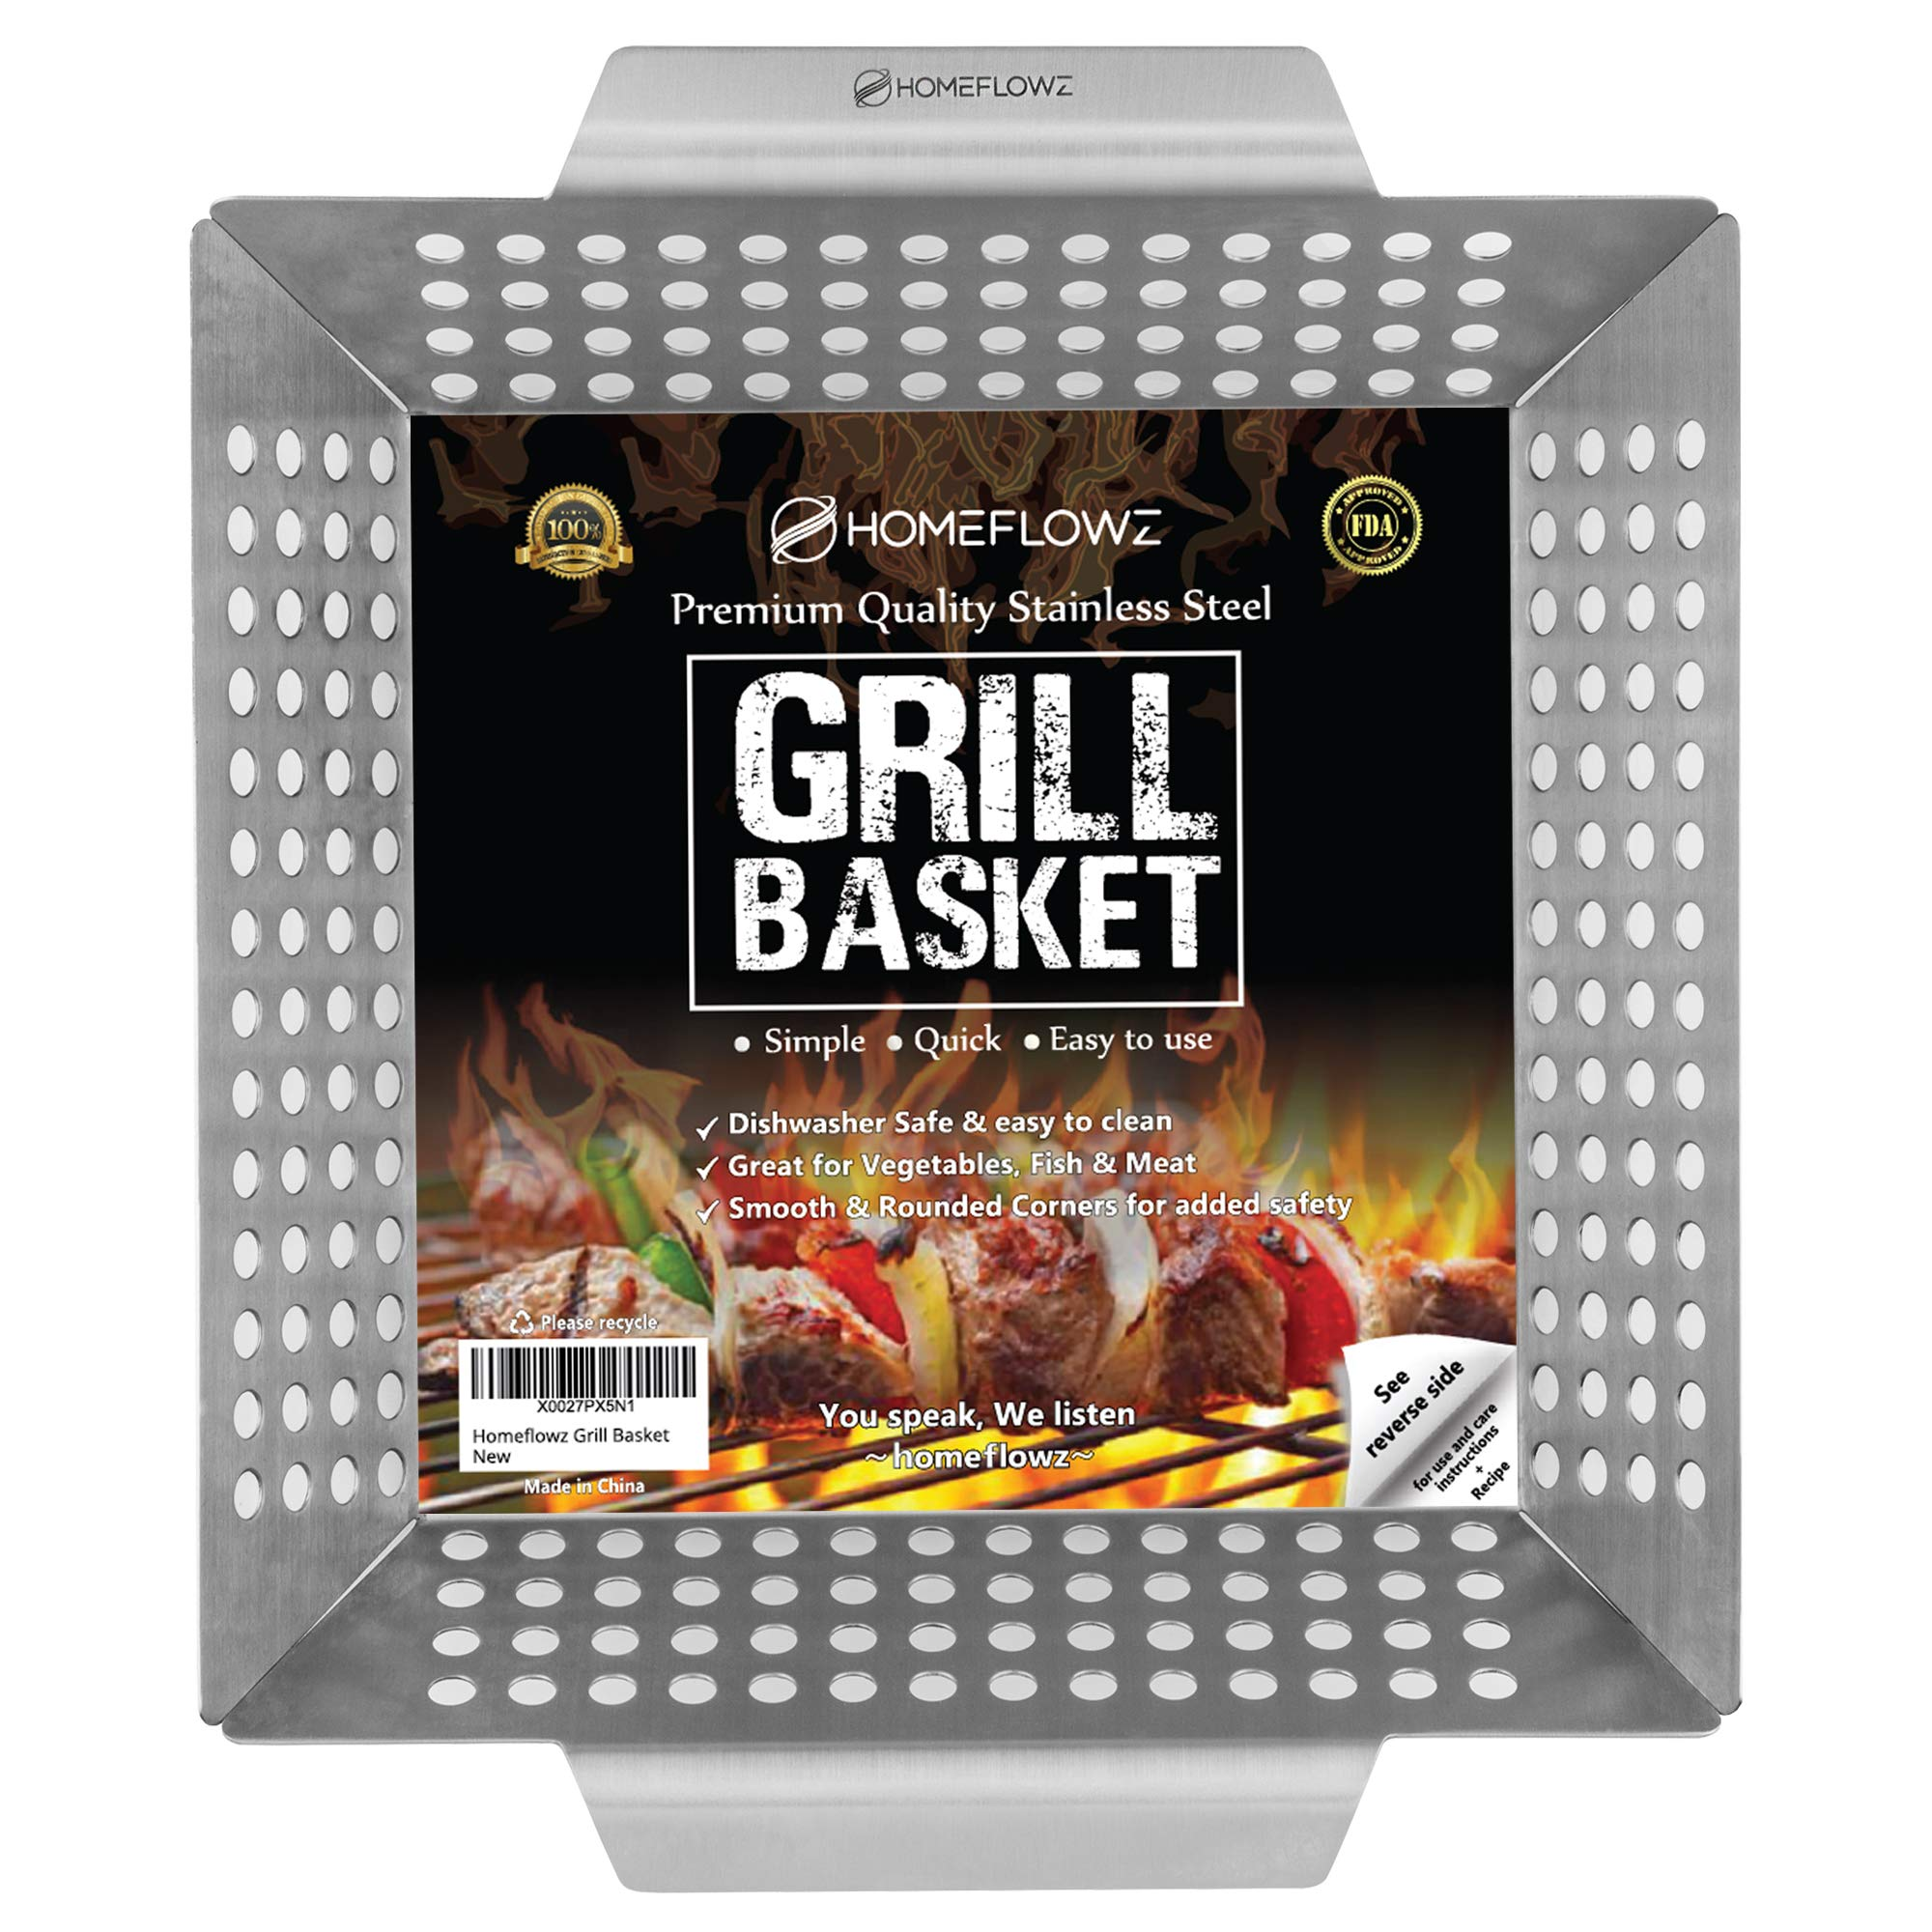 Homeflowz Grill Basket for Vegetables - Large Grilling Pan Wok for Veggies Fish and Meat - FDA Heavy Duty Stainless Steel Accessories for Gas Charcoal and All BBQ Grills - Great for Outdoor Camping by Homeflowz